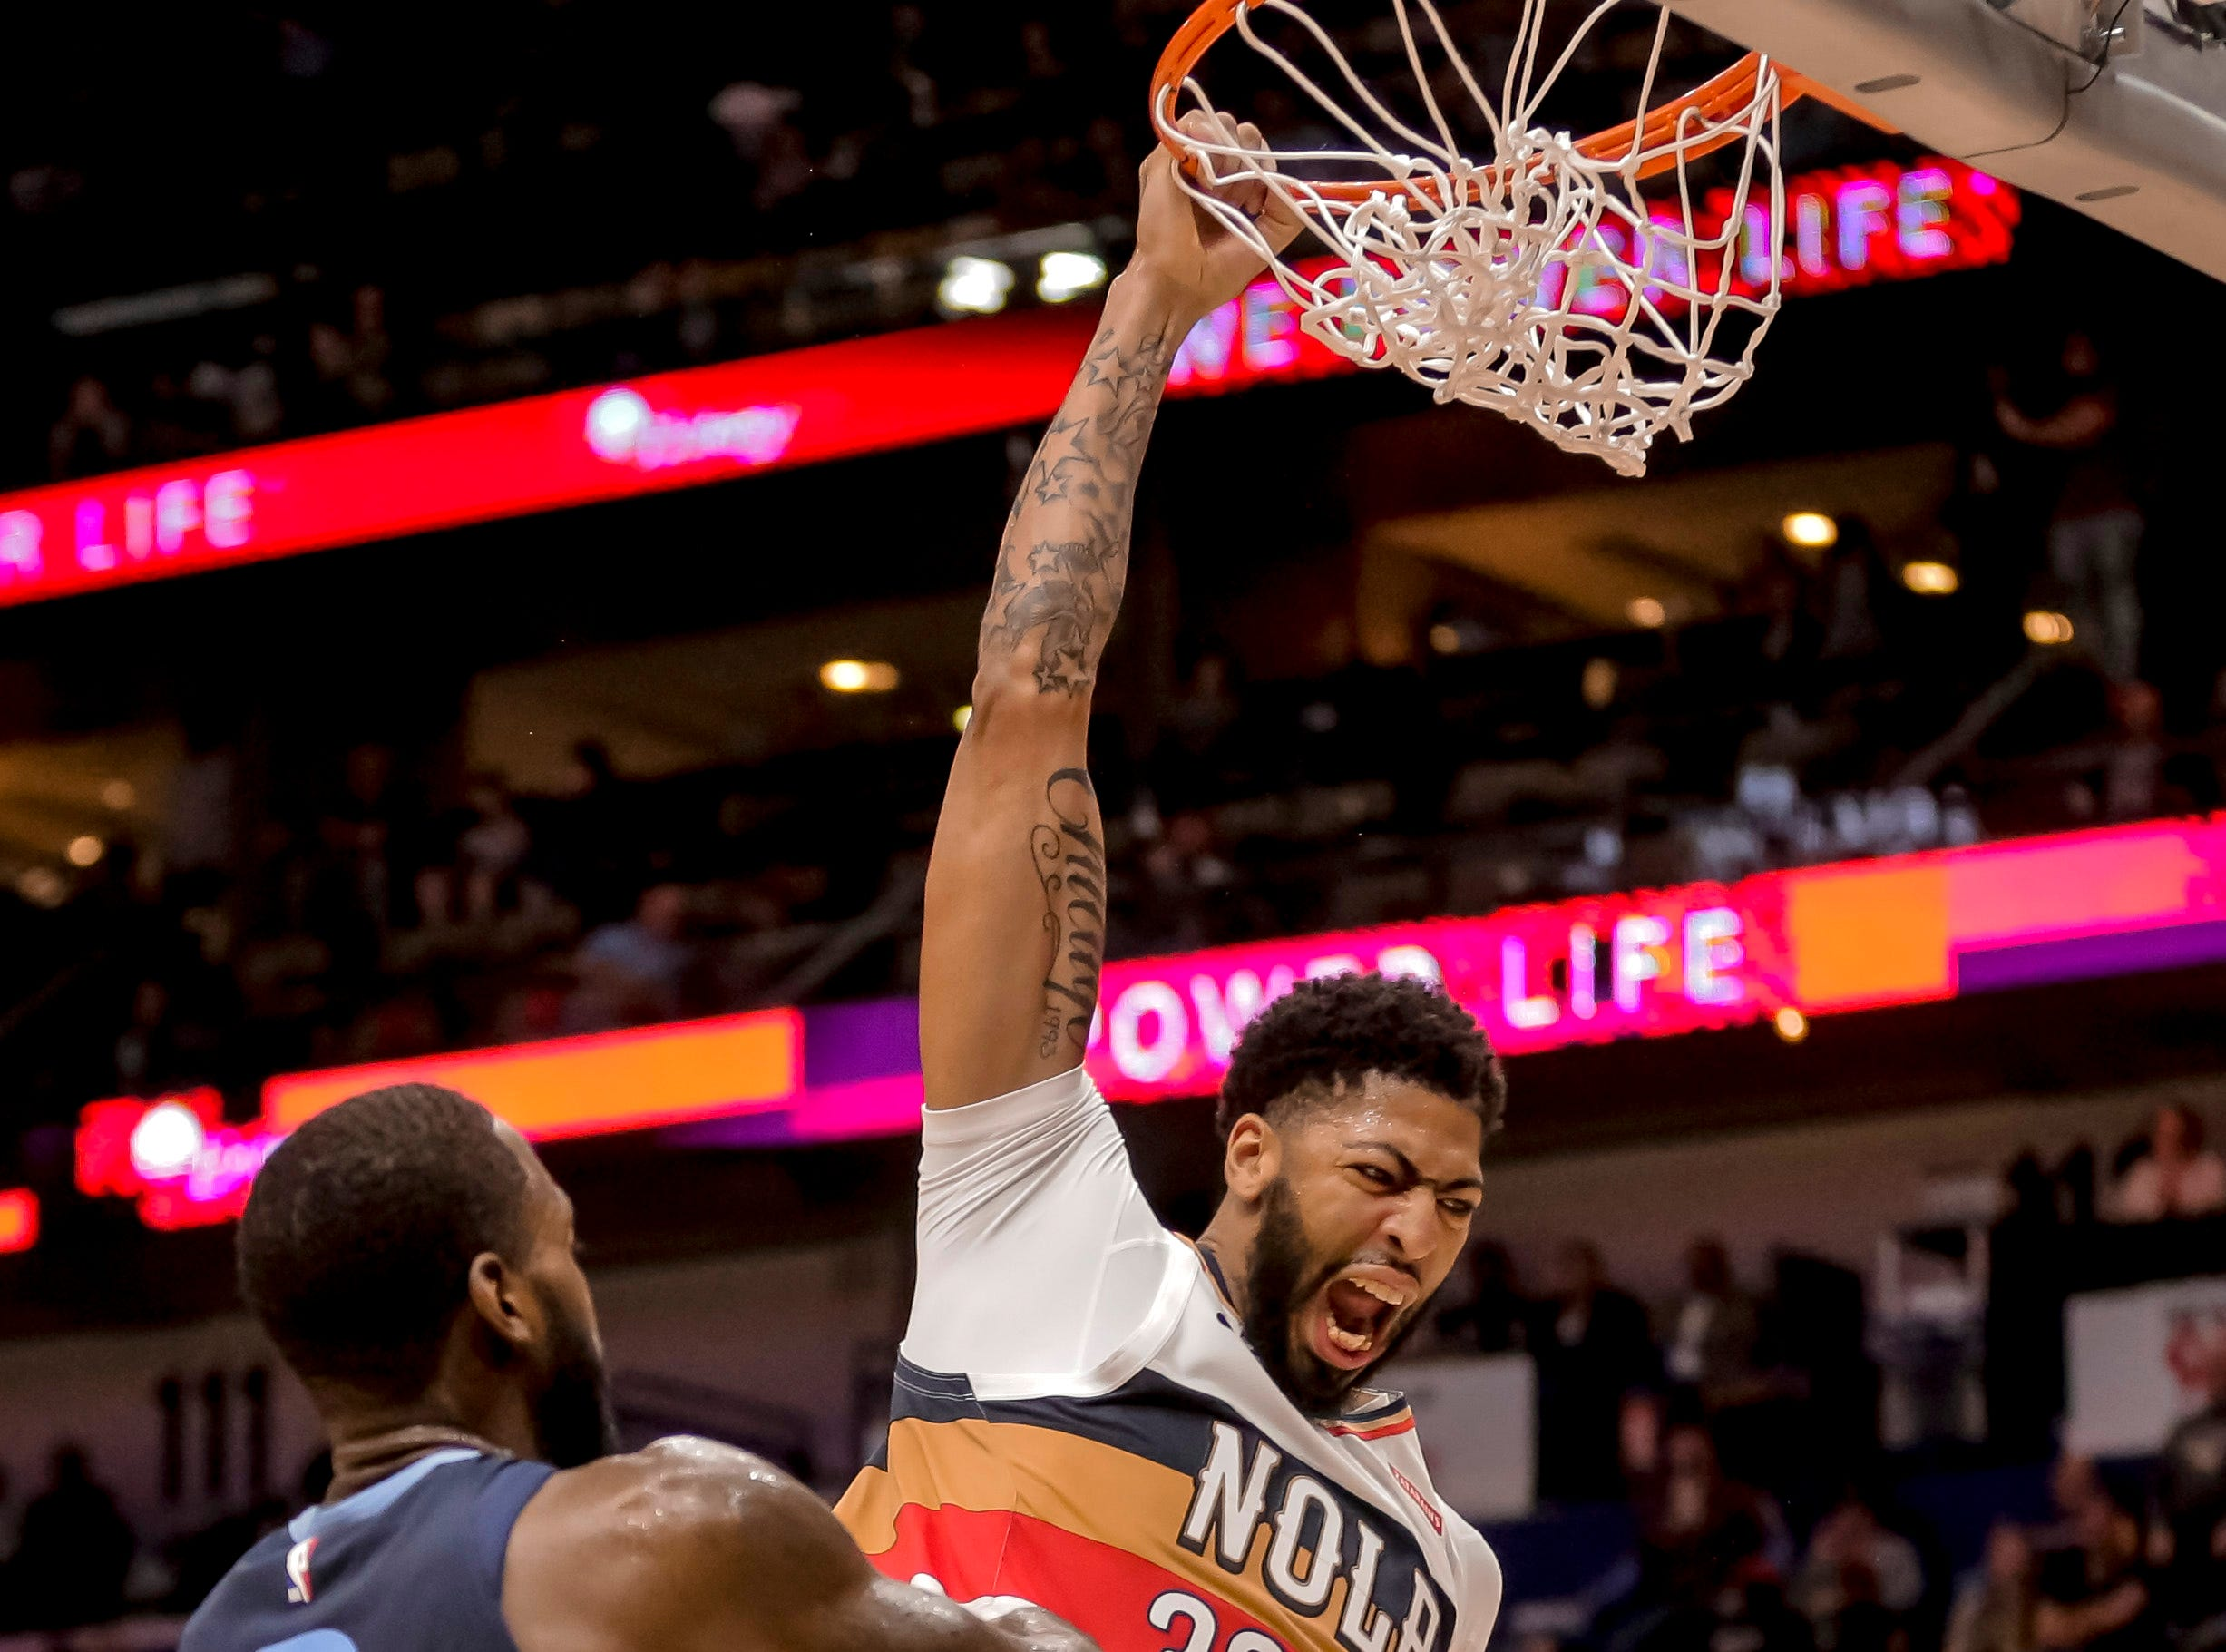 Jan. 7: New Orleans Pelicans forward Anthony Davis (23) reacts after dunking against the Memphis Grizzlies.